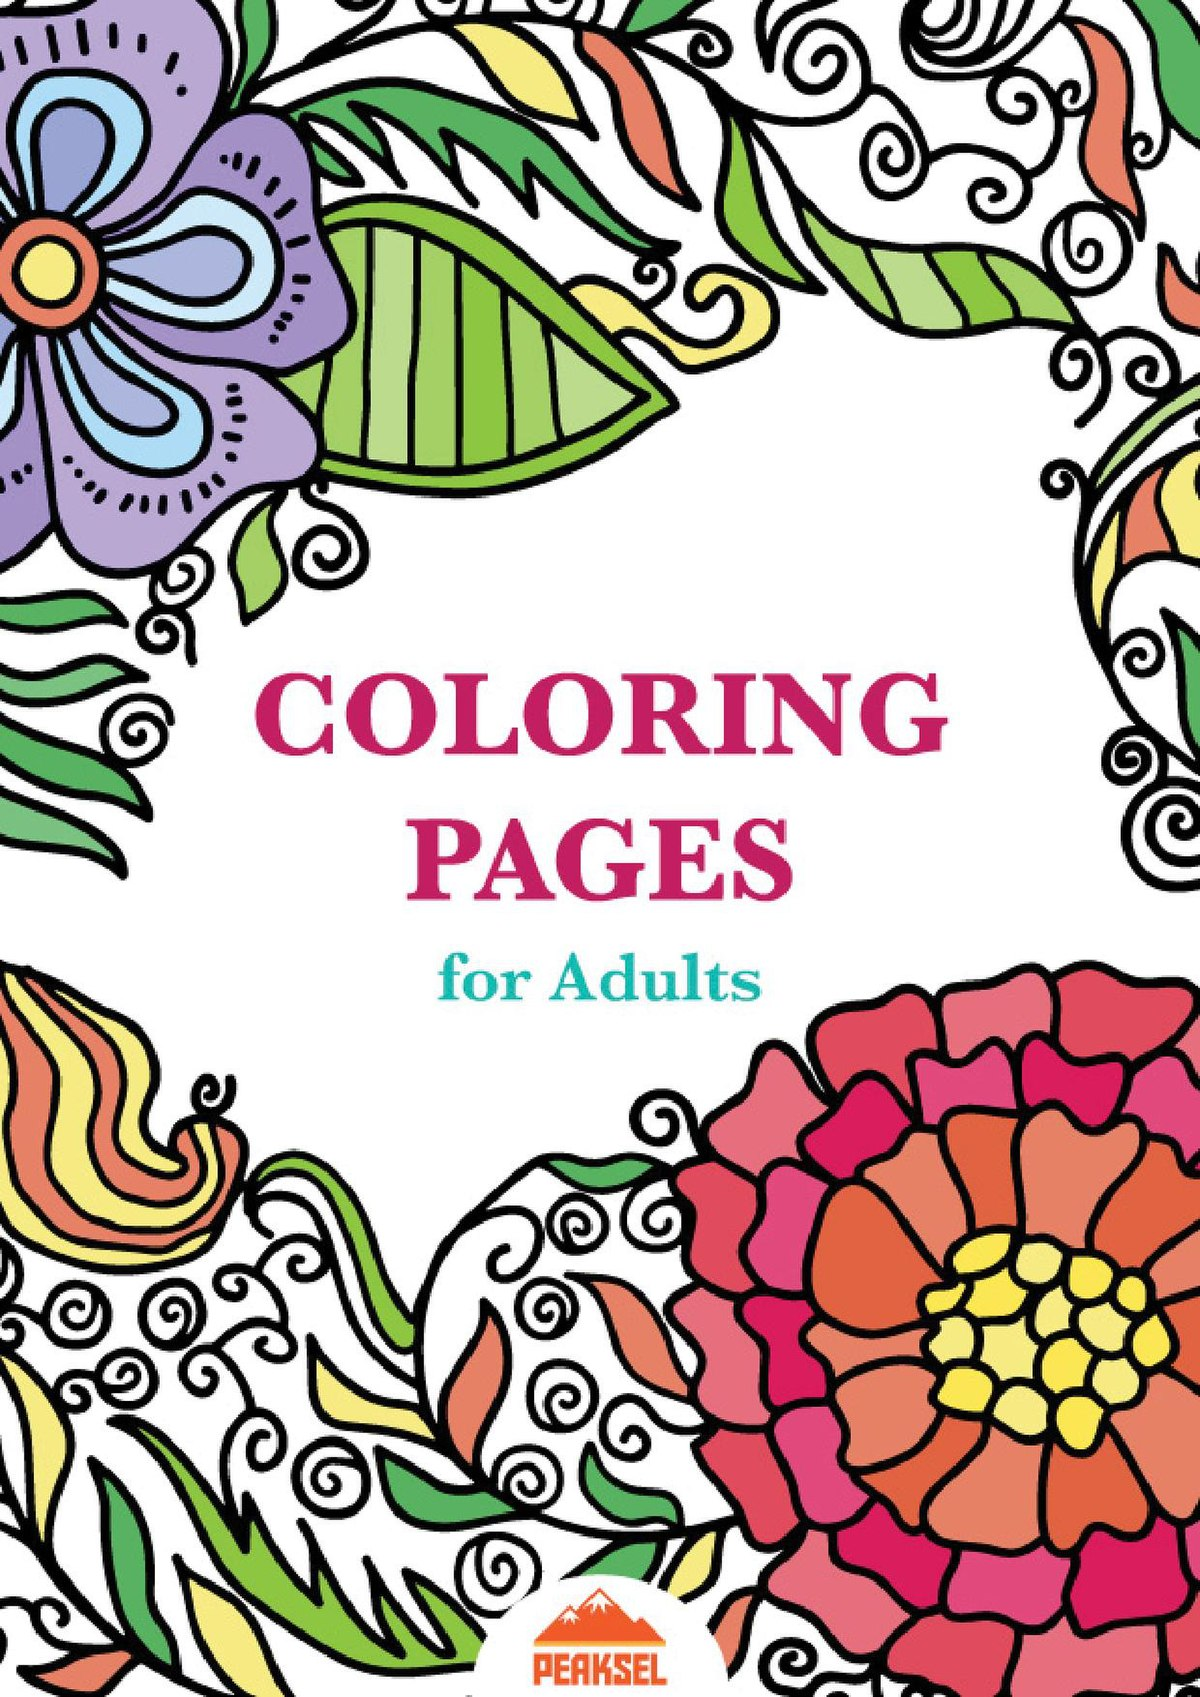 File:Printable Coloring Pages for Adults - Free Adult Coloring Book.pdf -  Wikimedia Commons